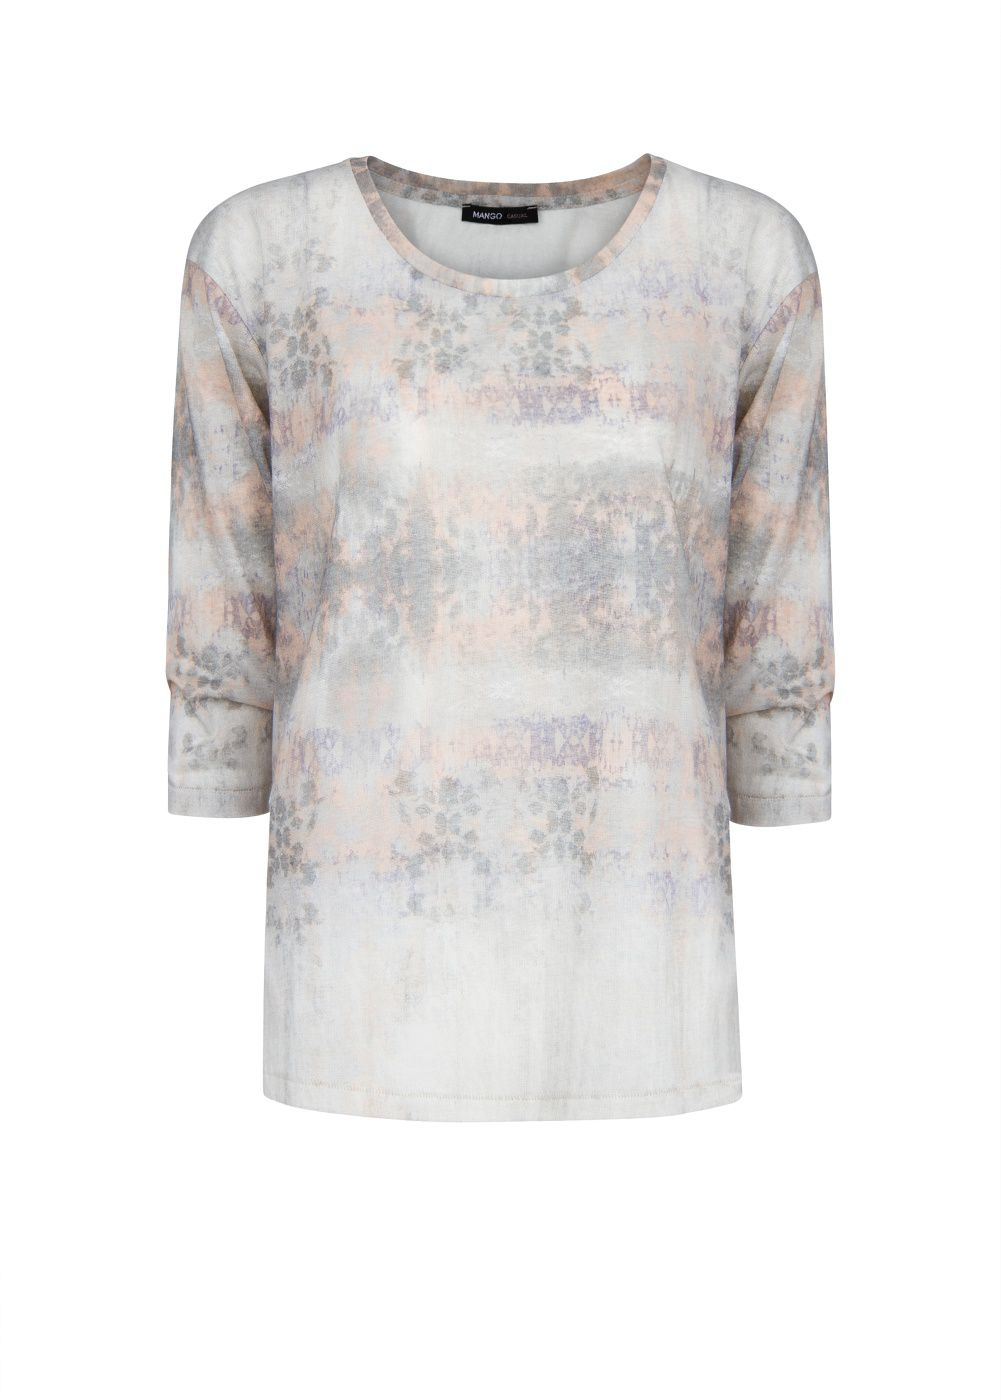 Watercolour print t-shirt